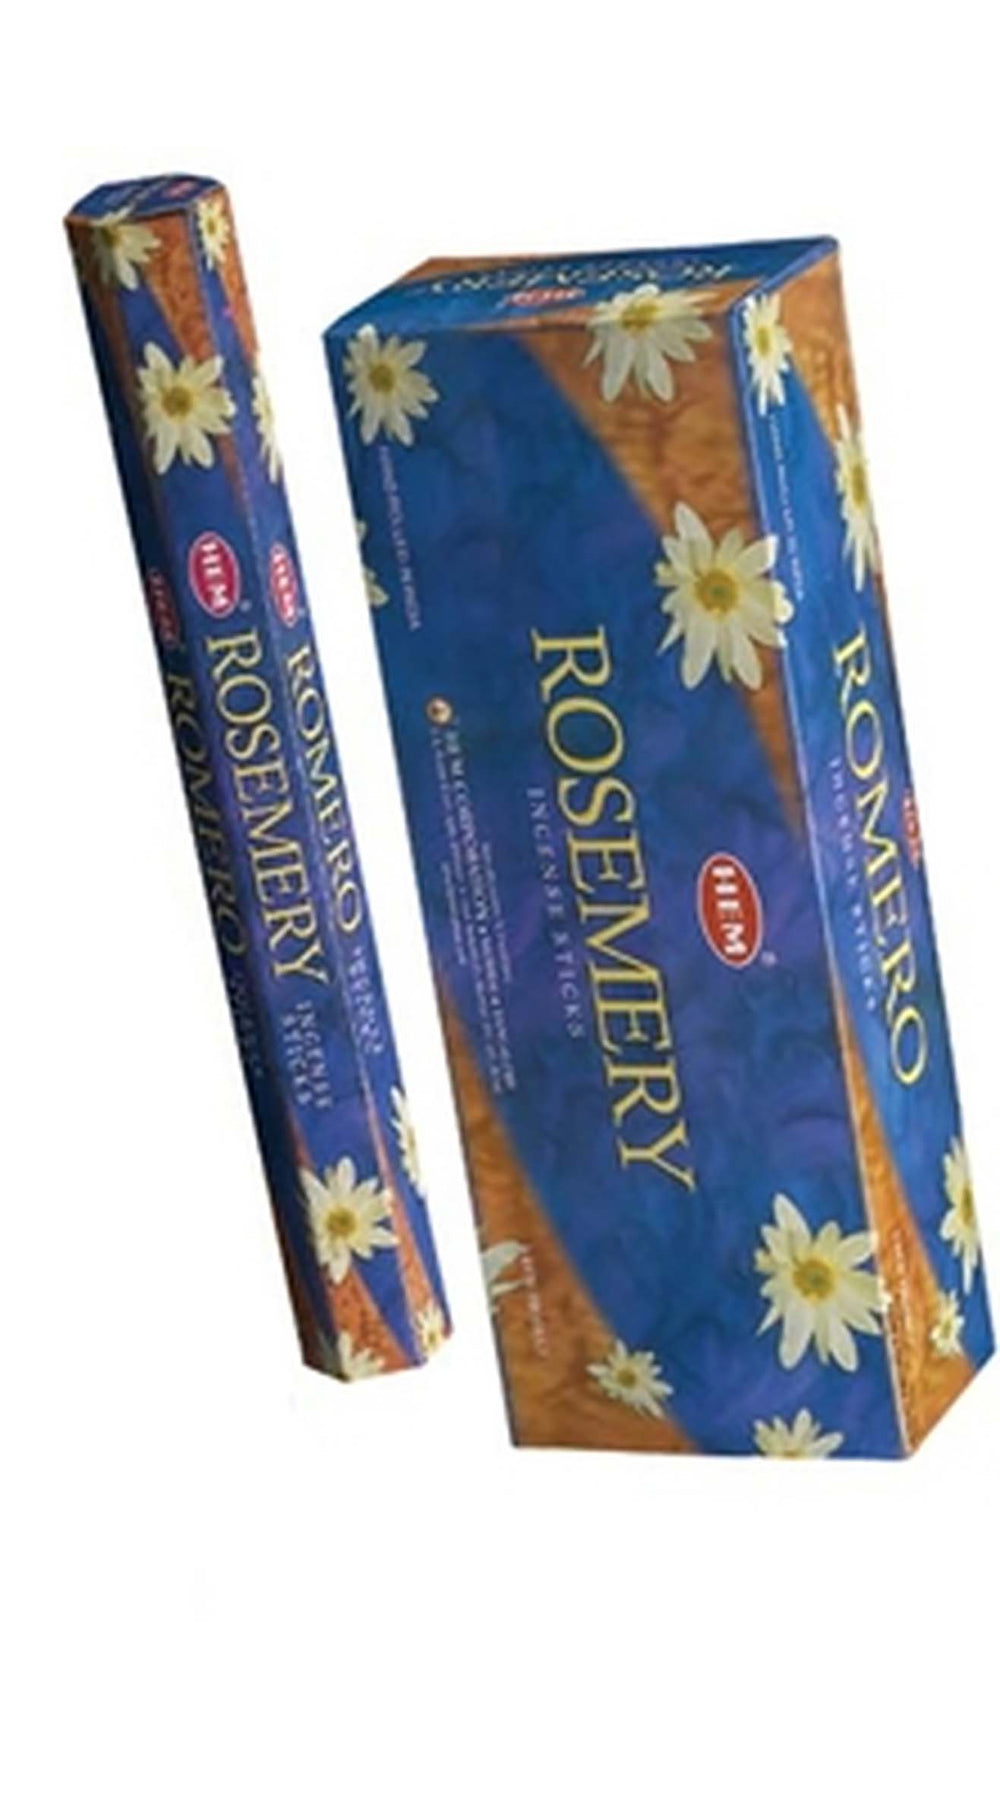 Hem Rosemary Incense Stick Hexa